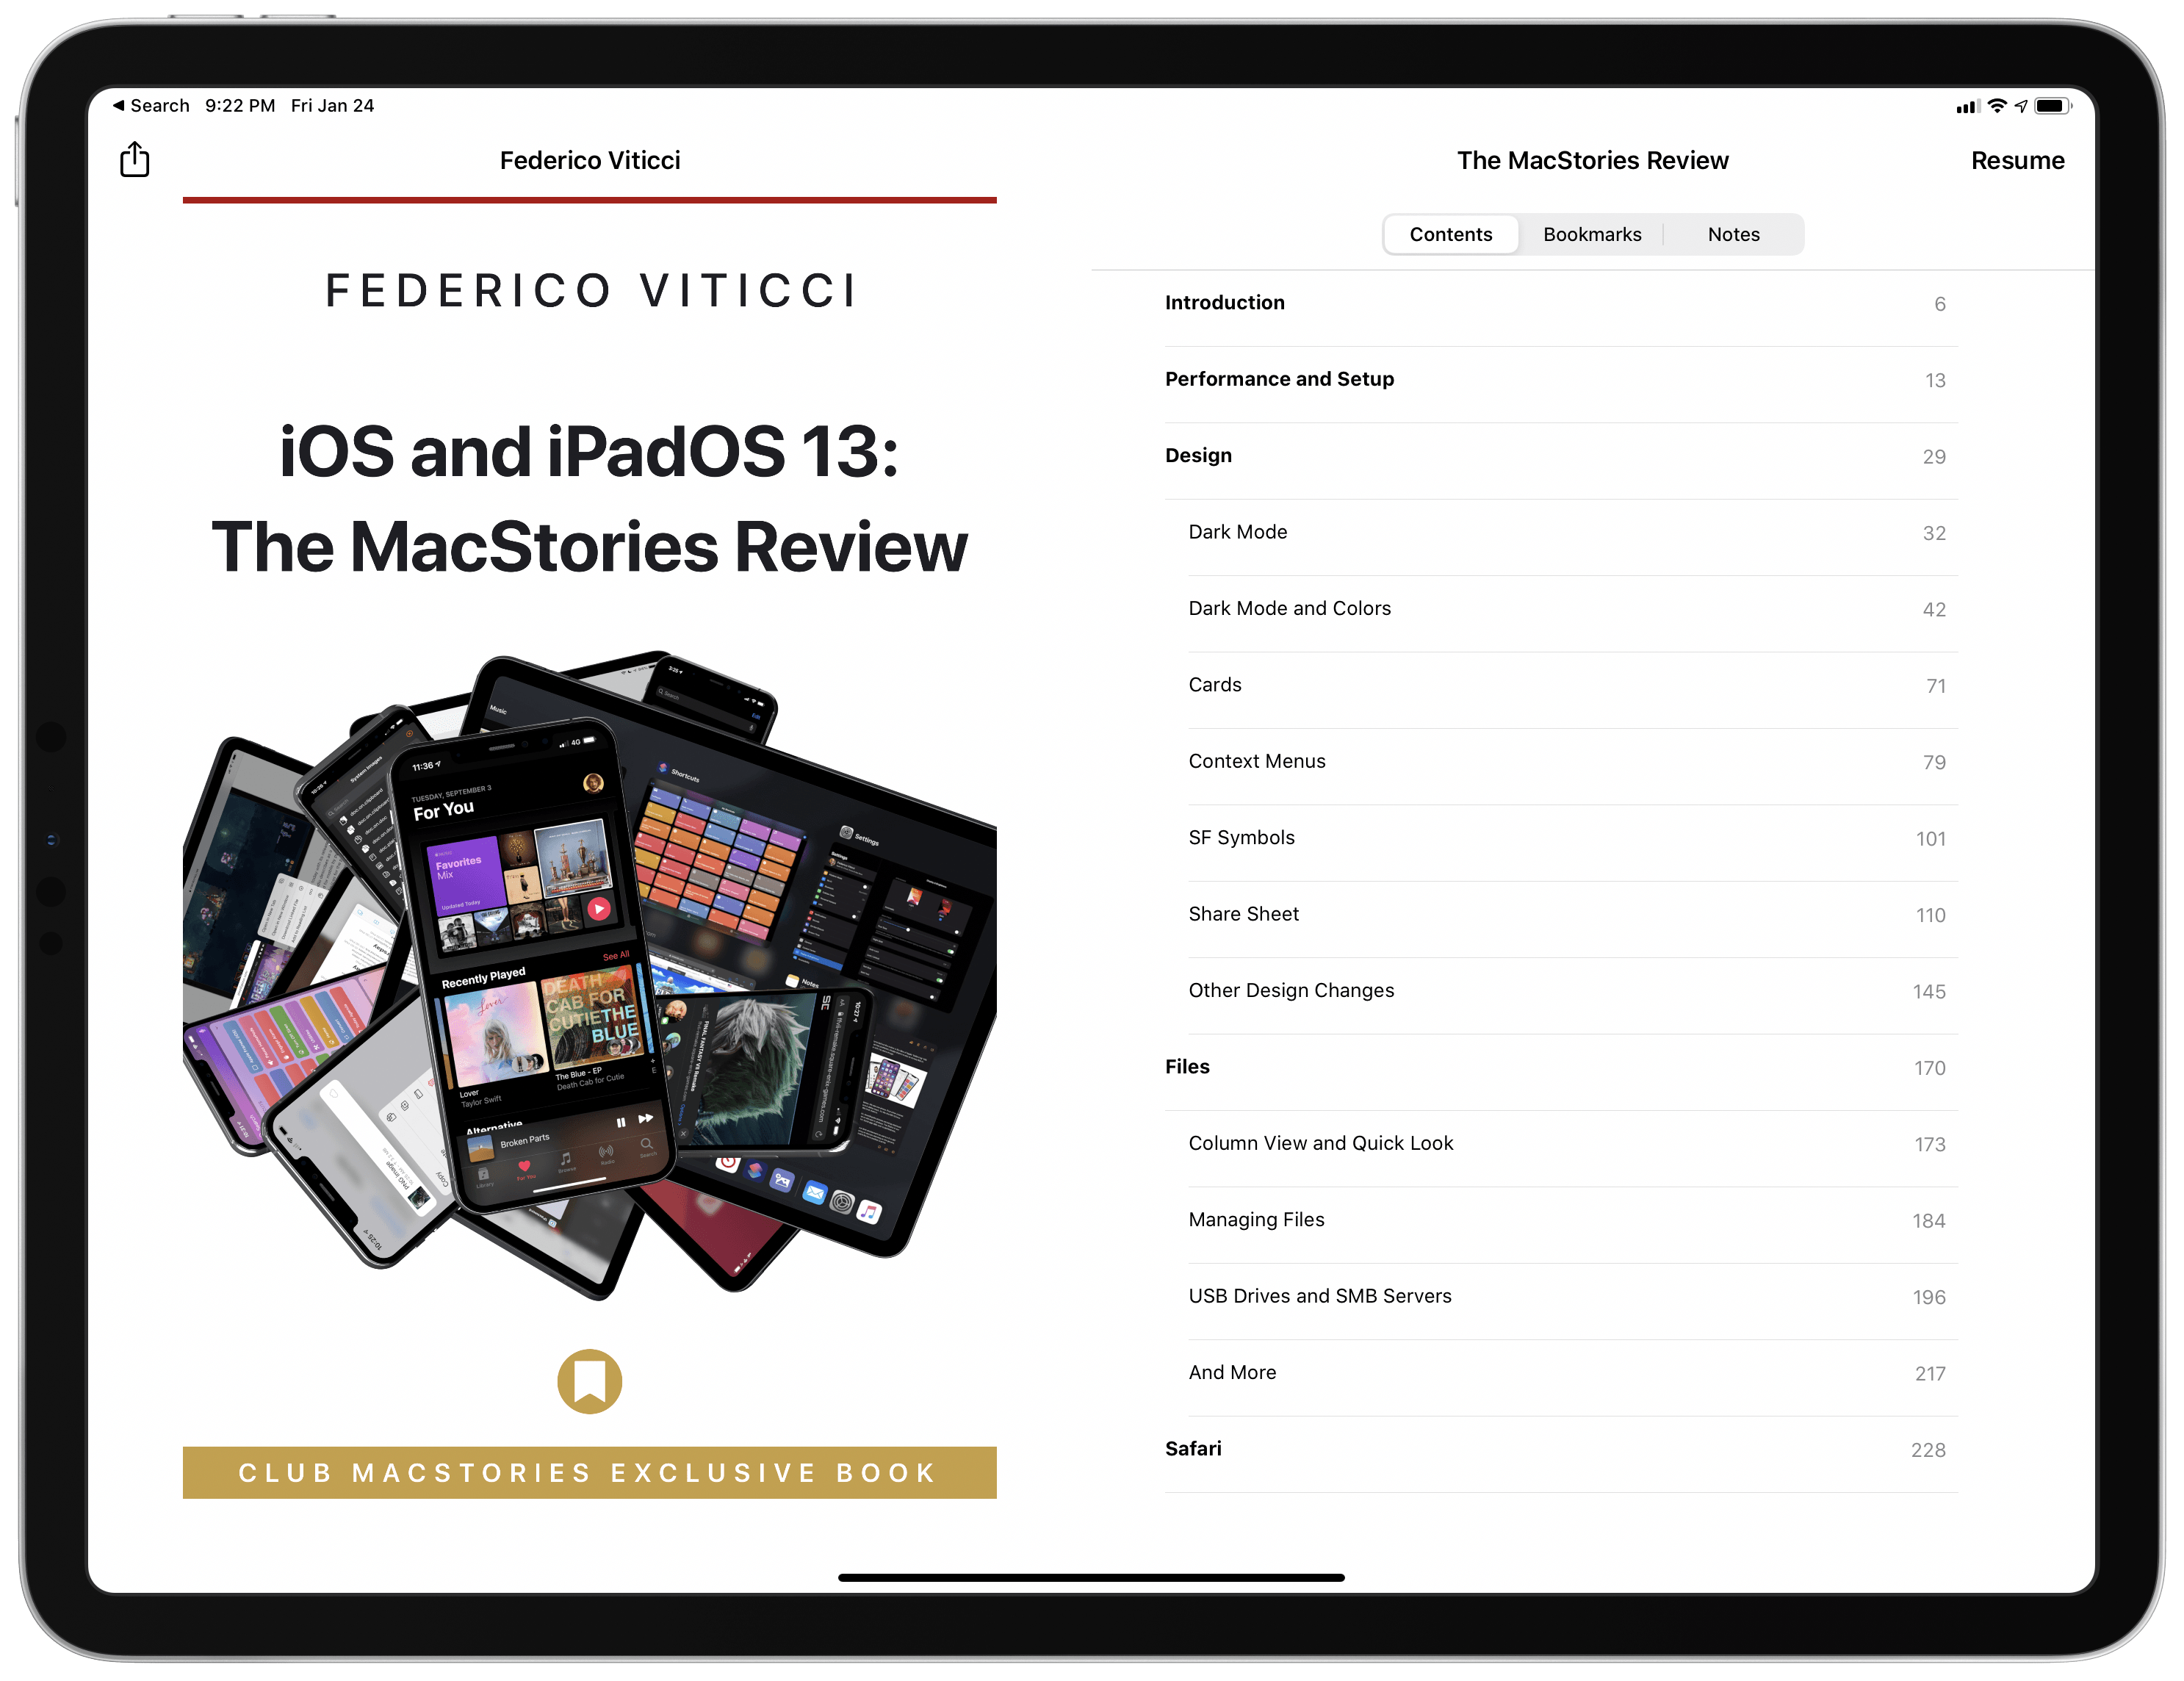 Federico's annual iOS and iPadOS reviews will be available as eBooks exclusively for Club MacStories members.